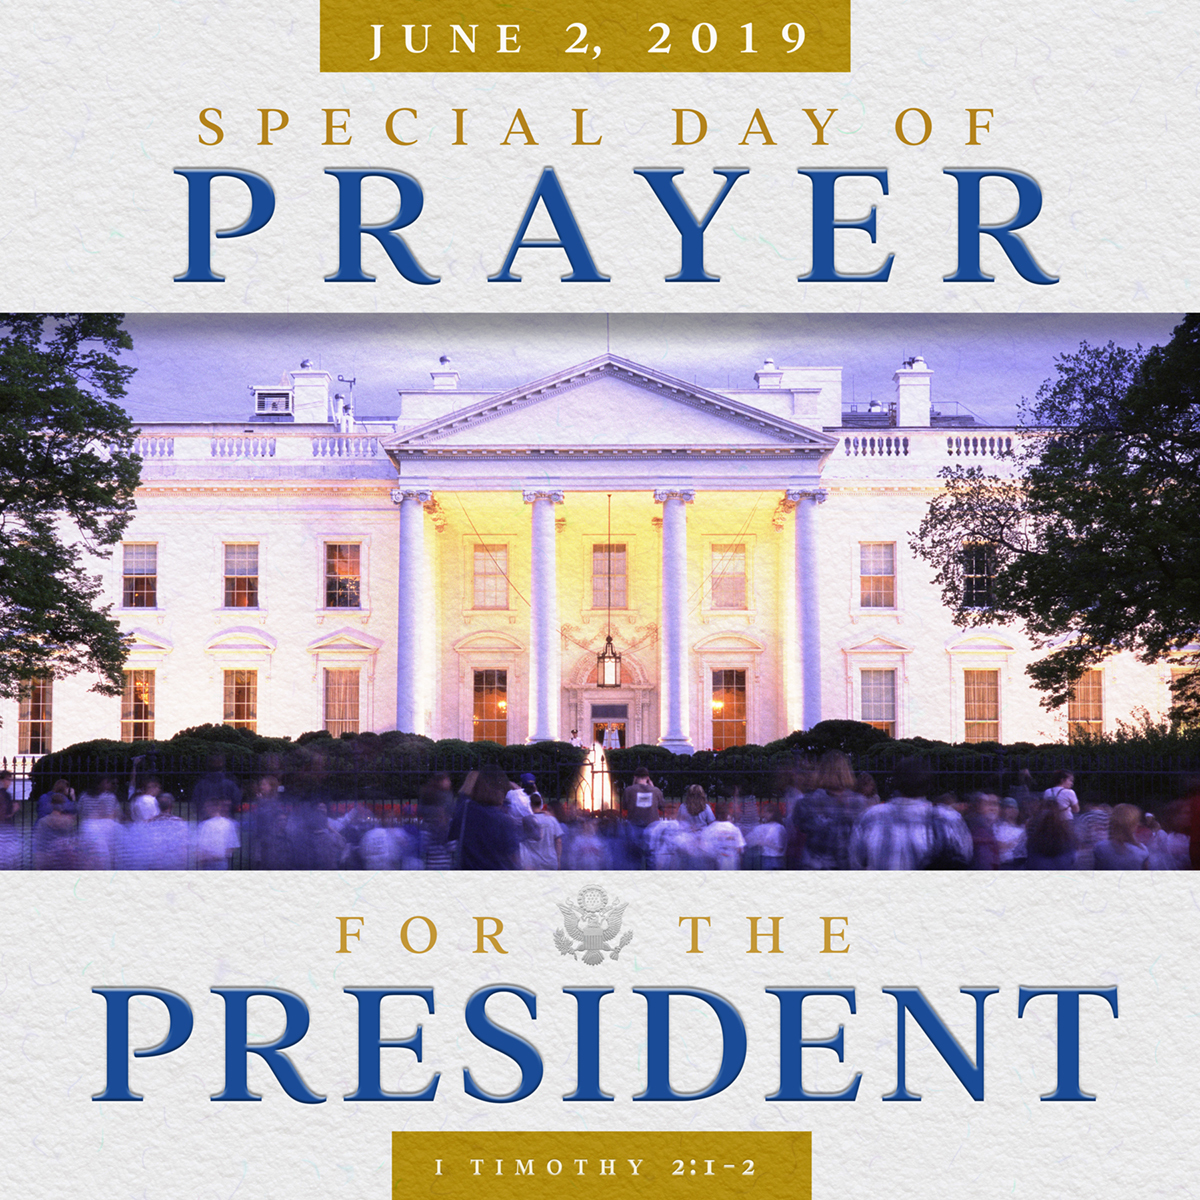 Franklin Graham announces 'special day of prayer' against